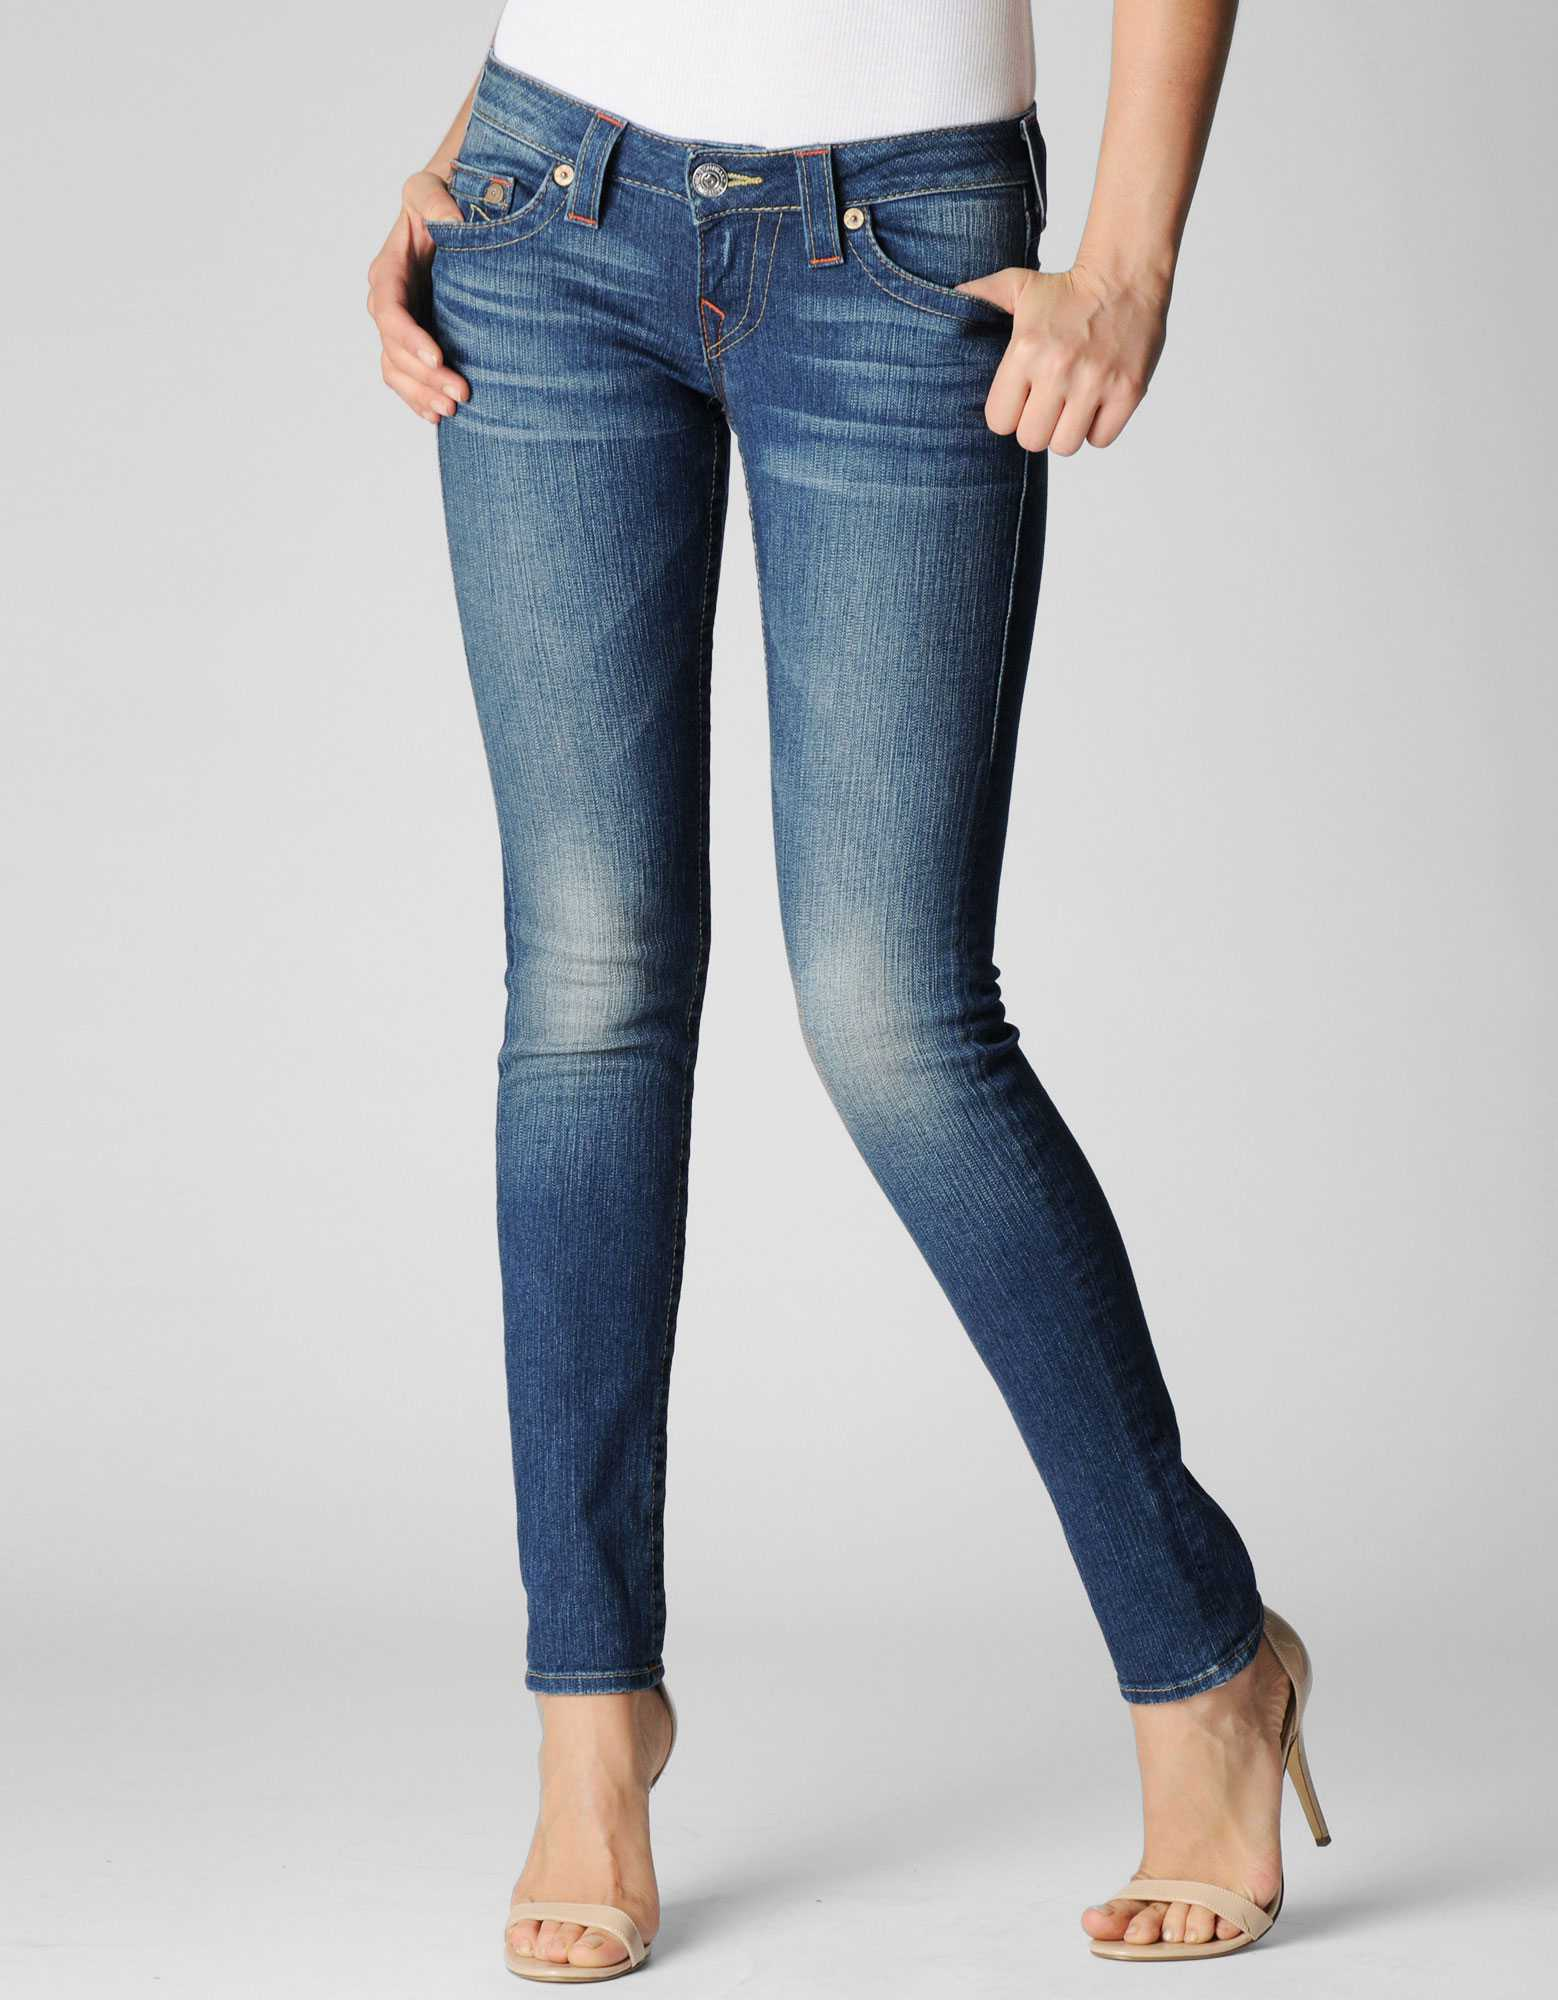 aa1c2044c5ed55 Are Your Best Jeans Mid Rise, Low Rise or High Rise